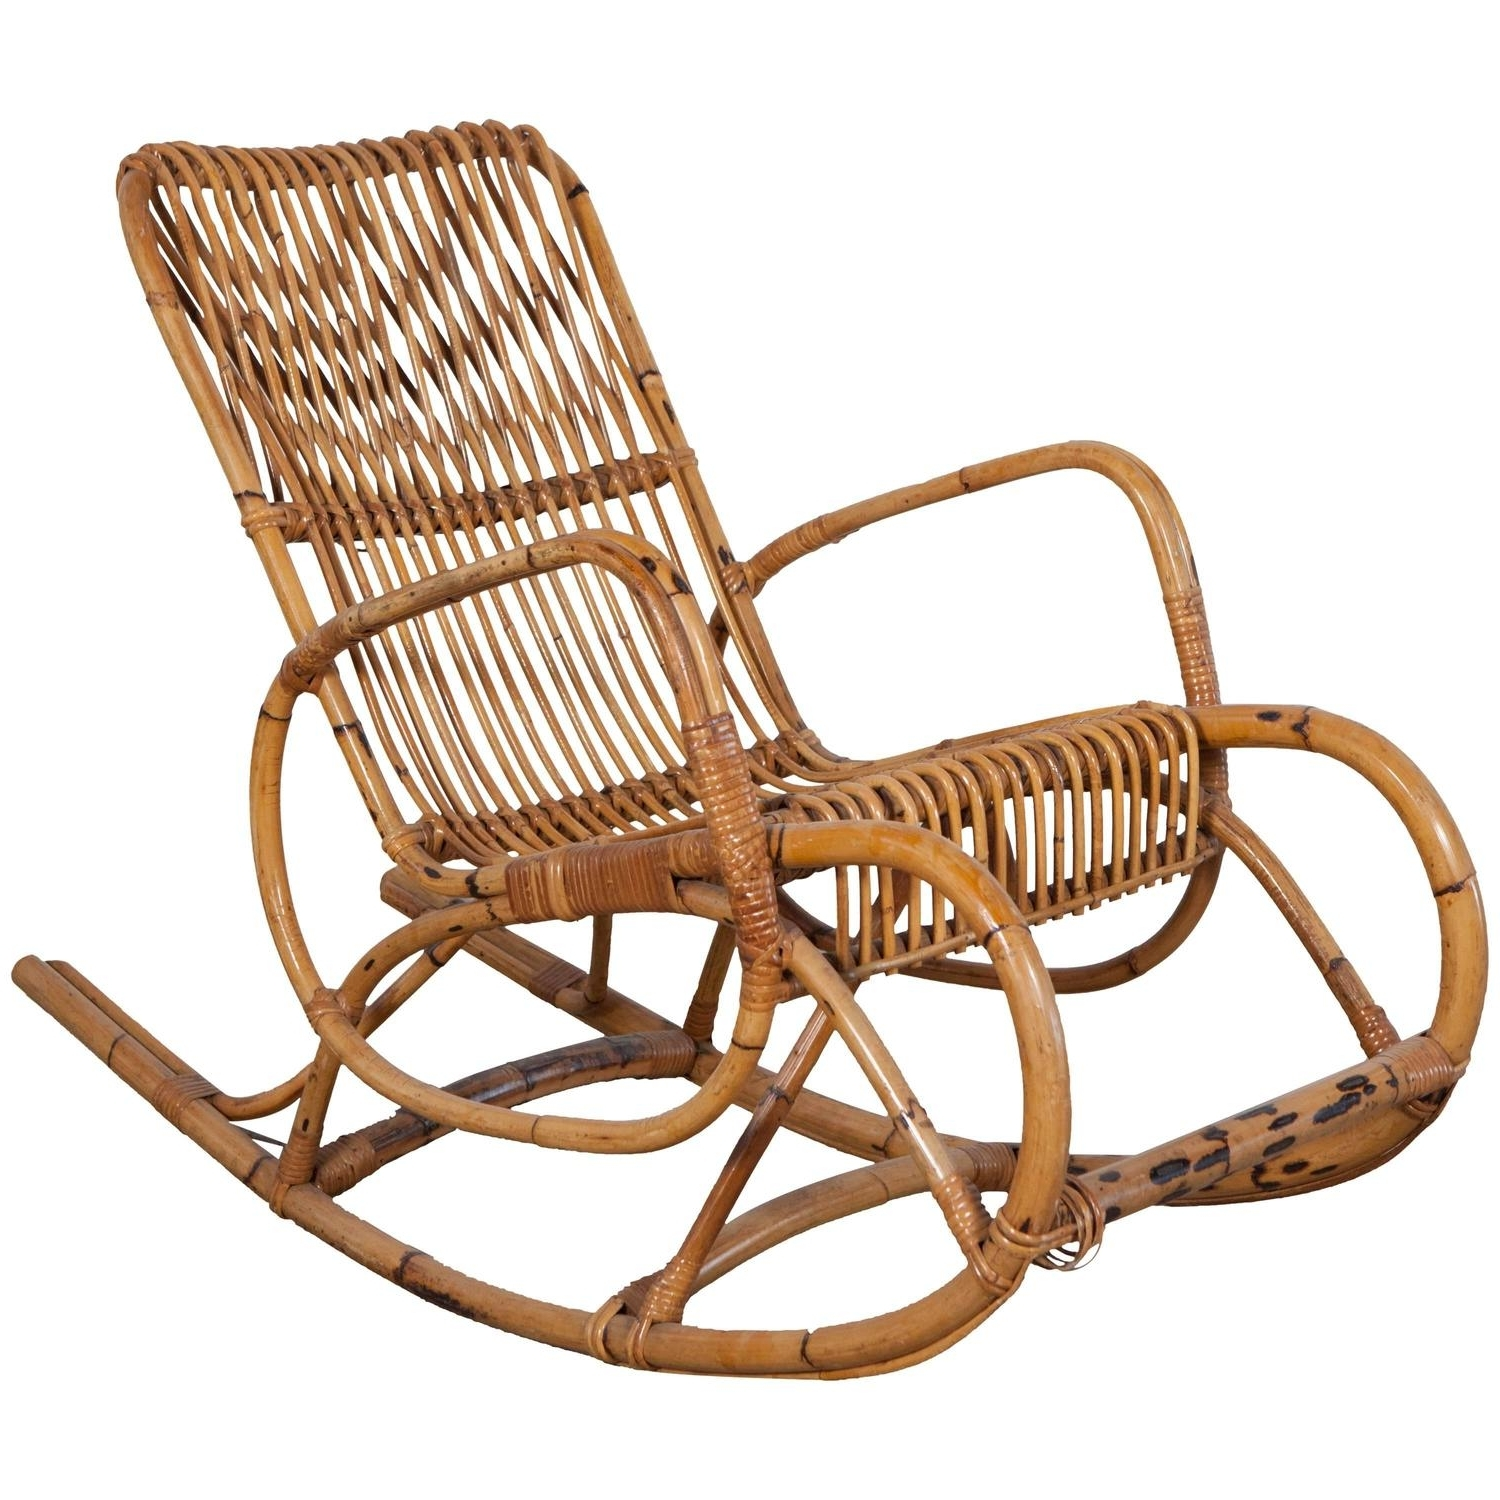 Preferred Vintage Italian Bamboo Rocking Chair With Square Arms At 1Stdibs Throughout Vintage Outdoor Rocking Chairs (View 11 of 20)